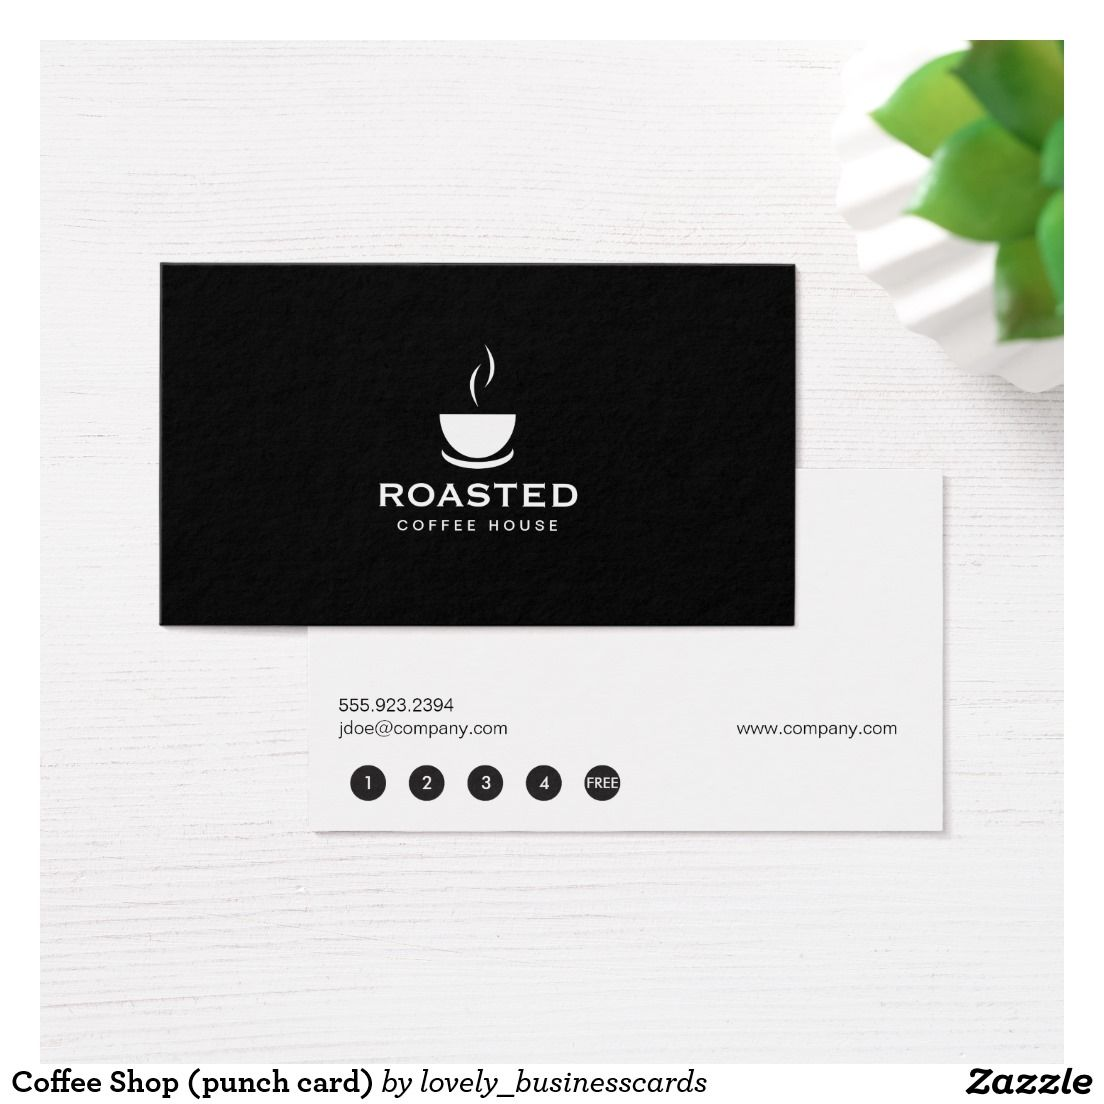 Coffee Shop (punch card) Loyalty Card | Pinterest